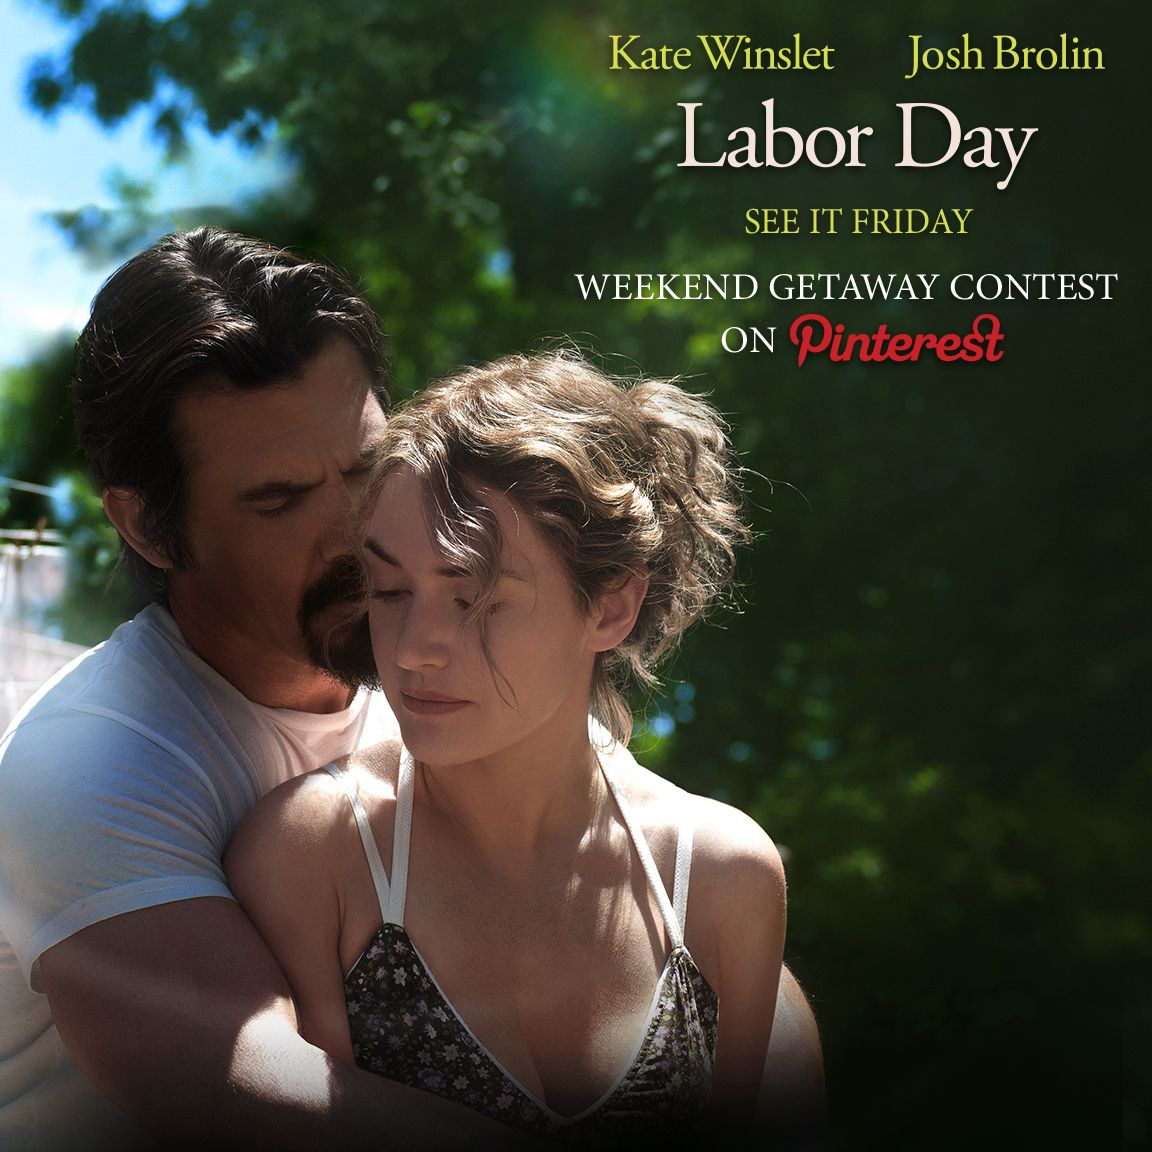 Win a romantic weekend getaway! Submit your love inspired images with #LabordayMovie #Love for your chance to win! Rules: http://www.labordaymovie.com/OfficialRules.html